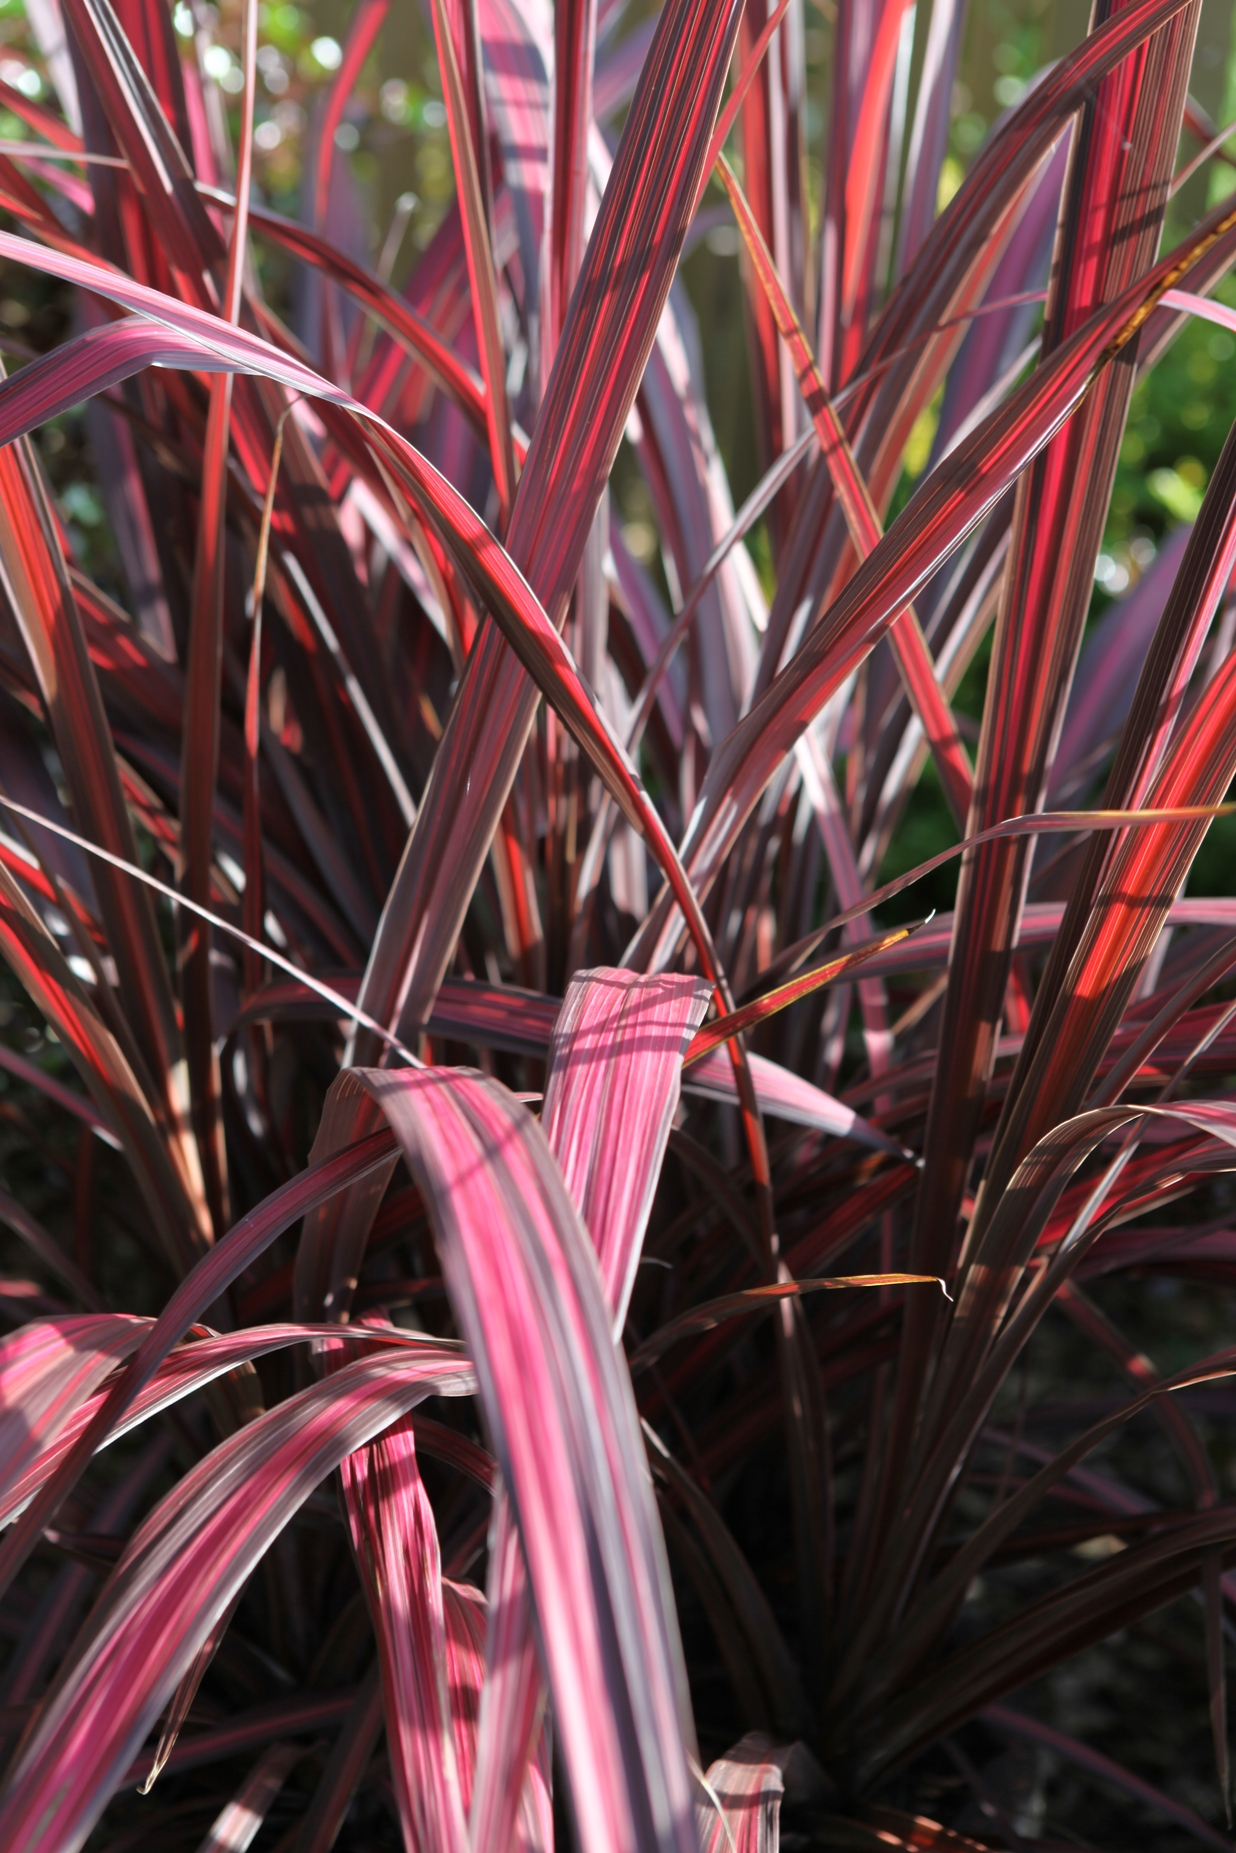 Cheery Sale Cordyline Electric Pink Pruning Exposition La Collection Globe Planter Cordyline Electric Pink Cordyline Electric Pink houzz 01 Cordyline Electric Pink